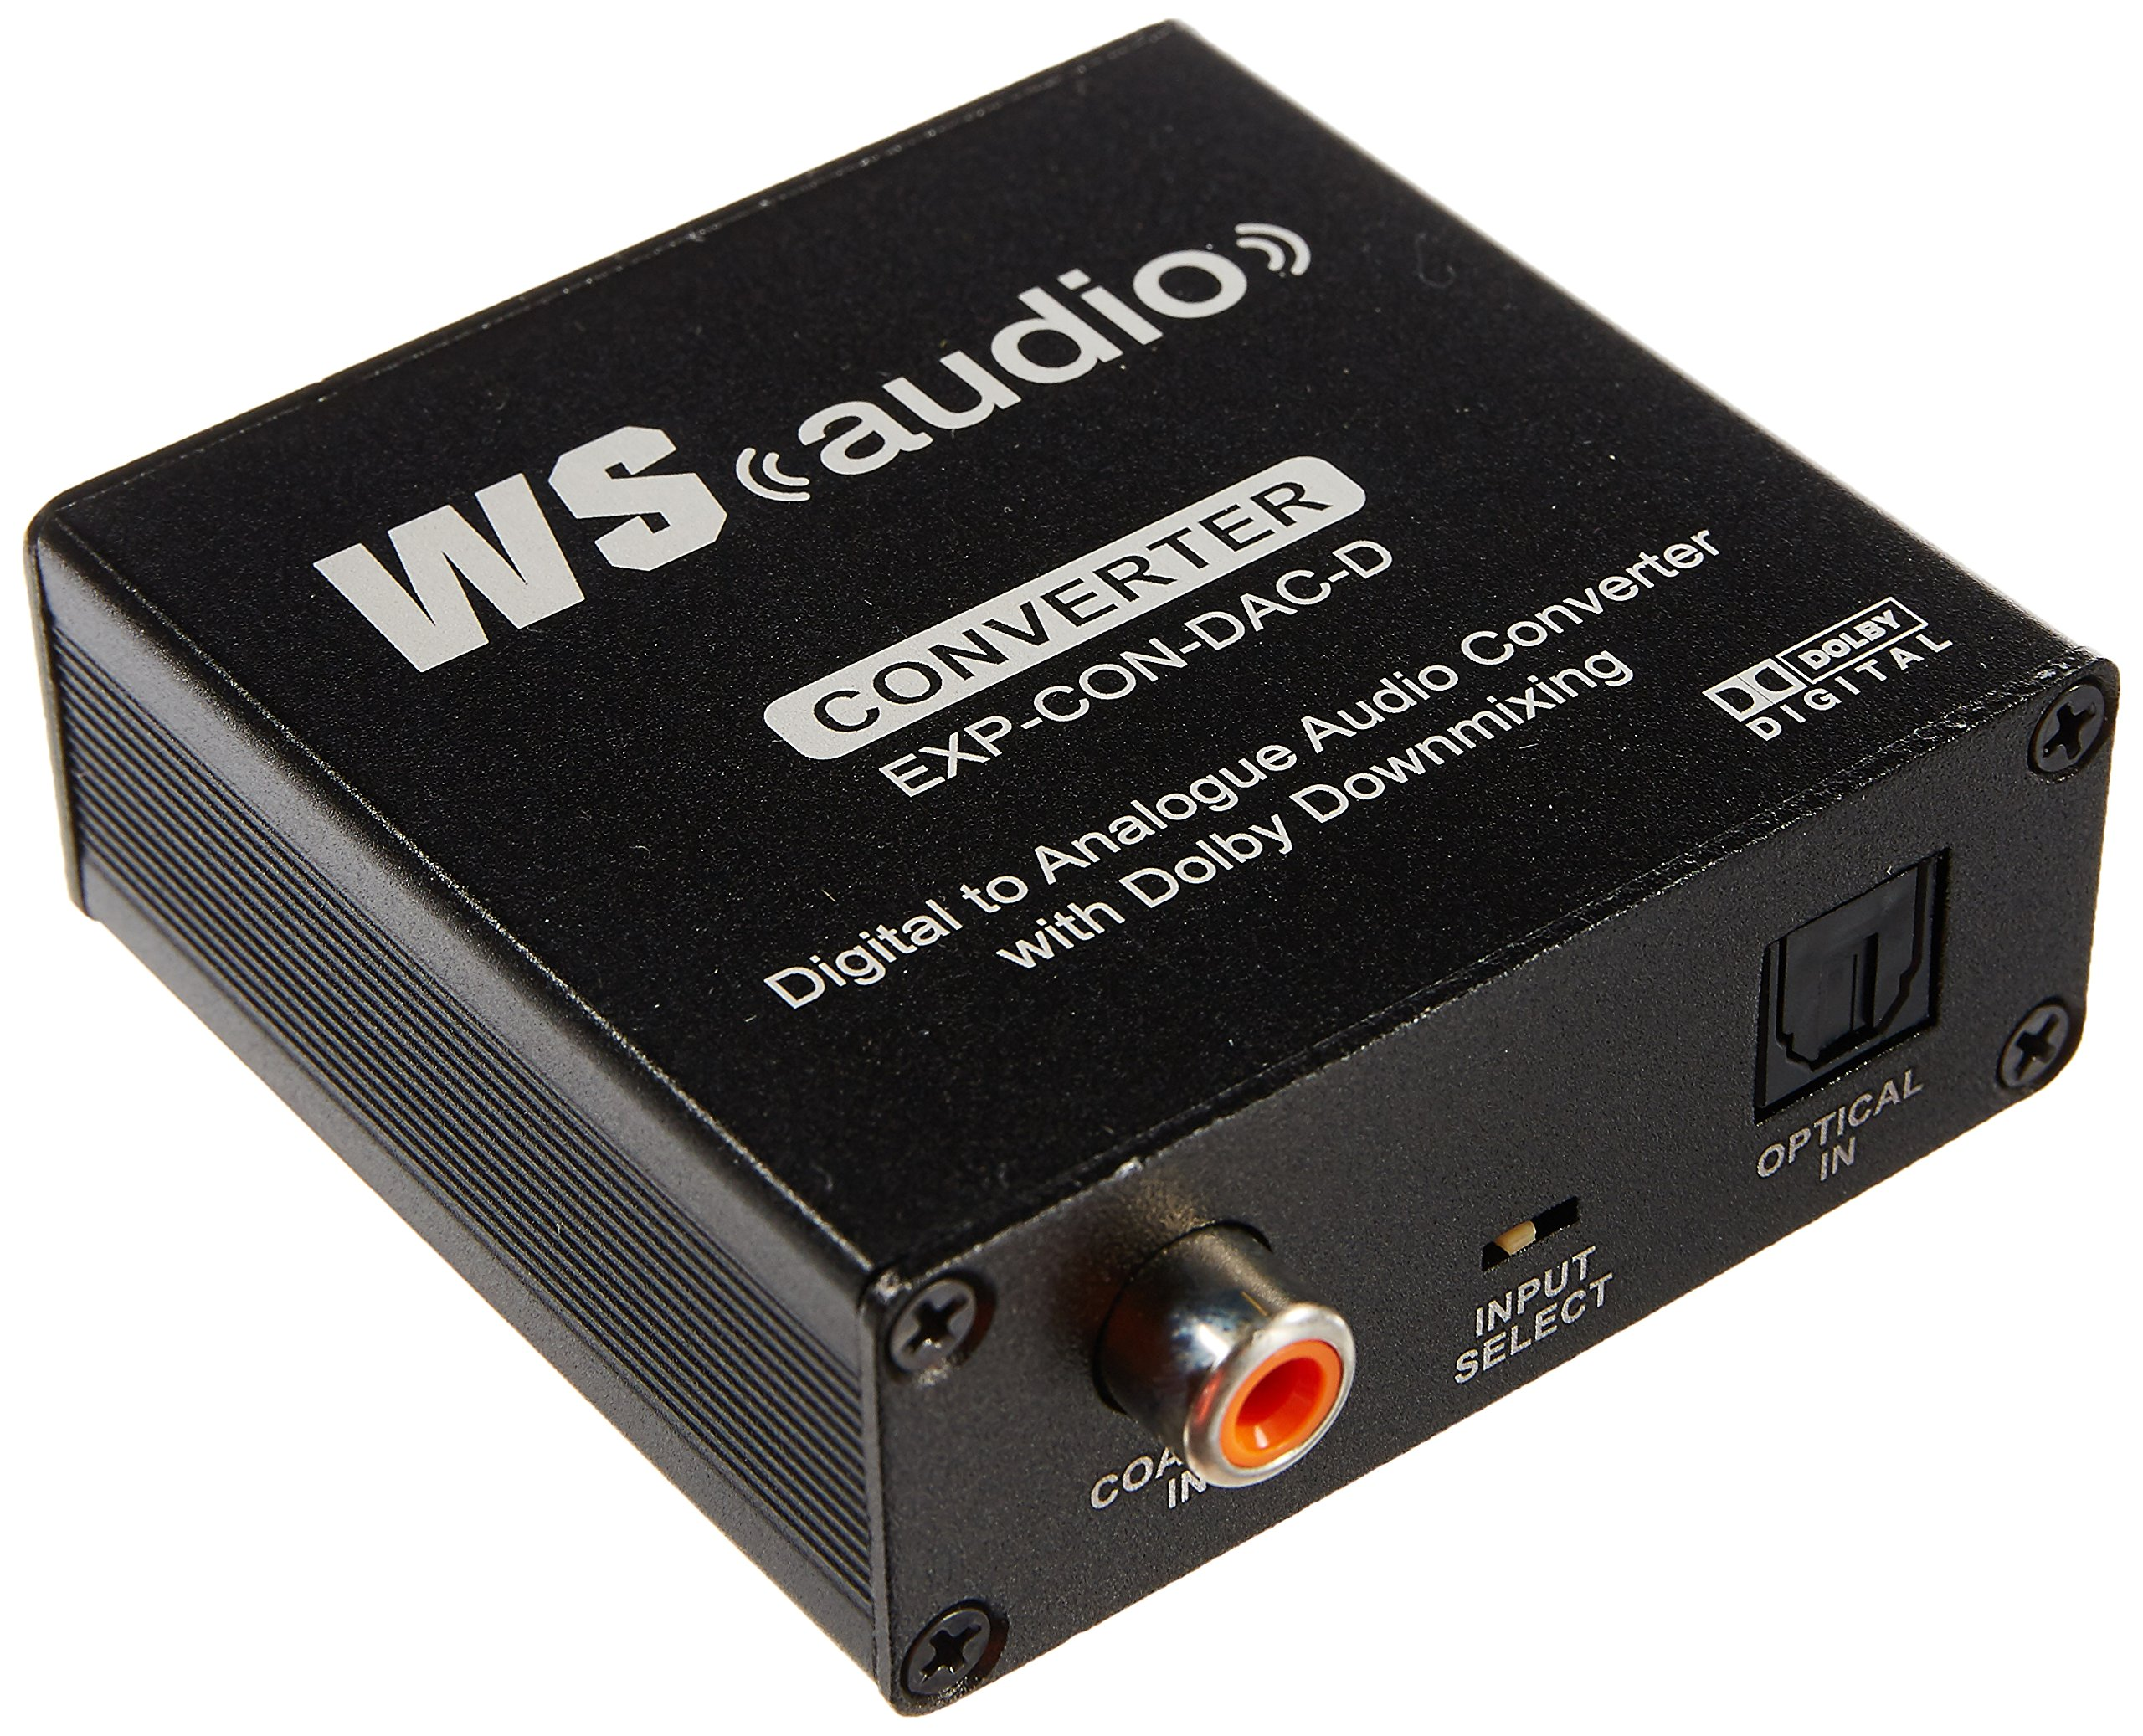 WyreStorm Express™ Digital to Analogue Audio Converter with Dolby Downmix